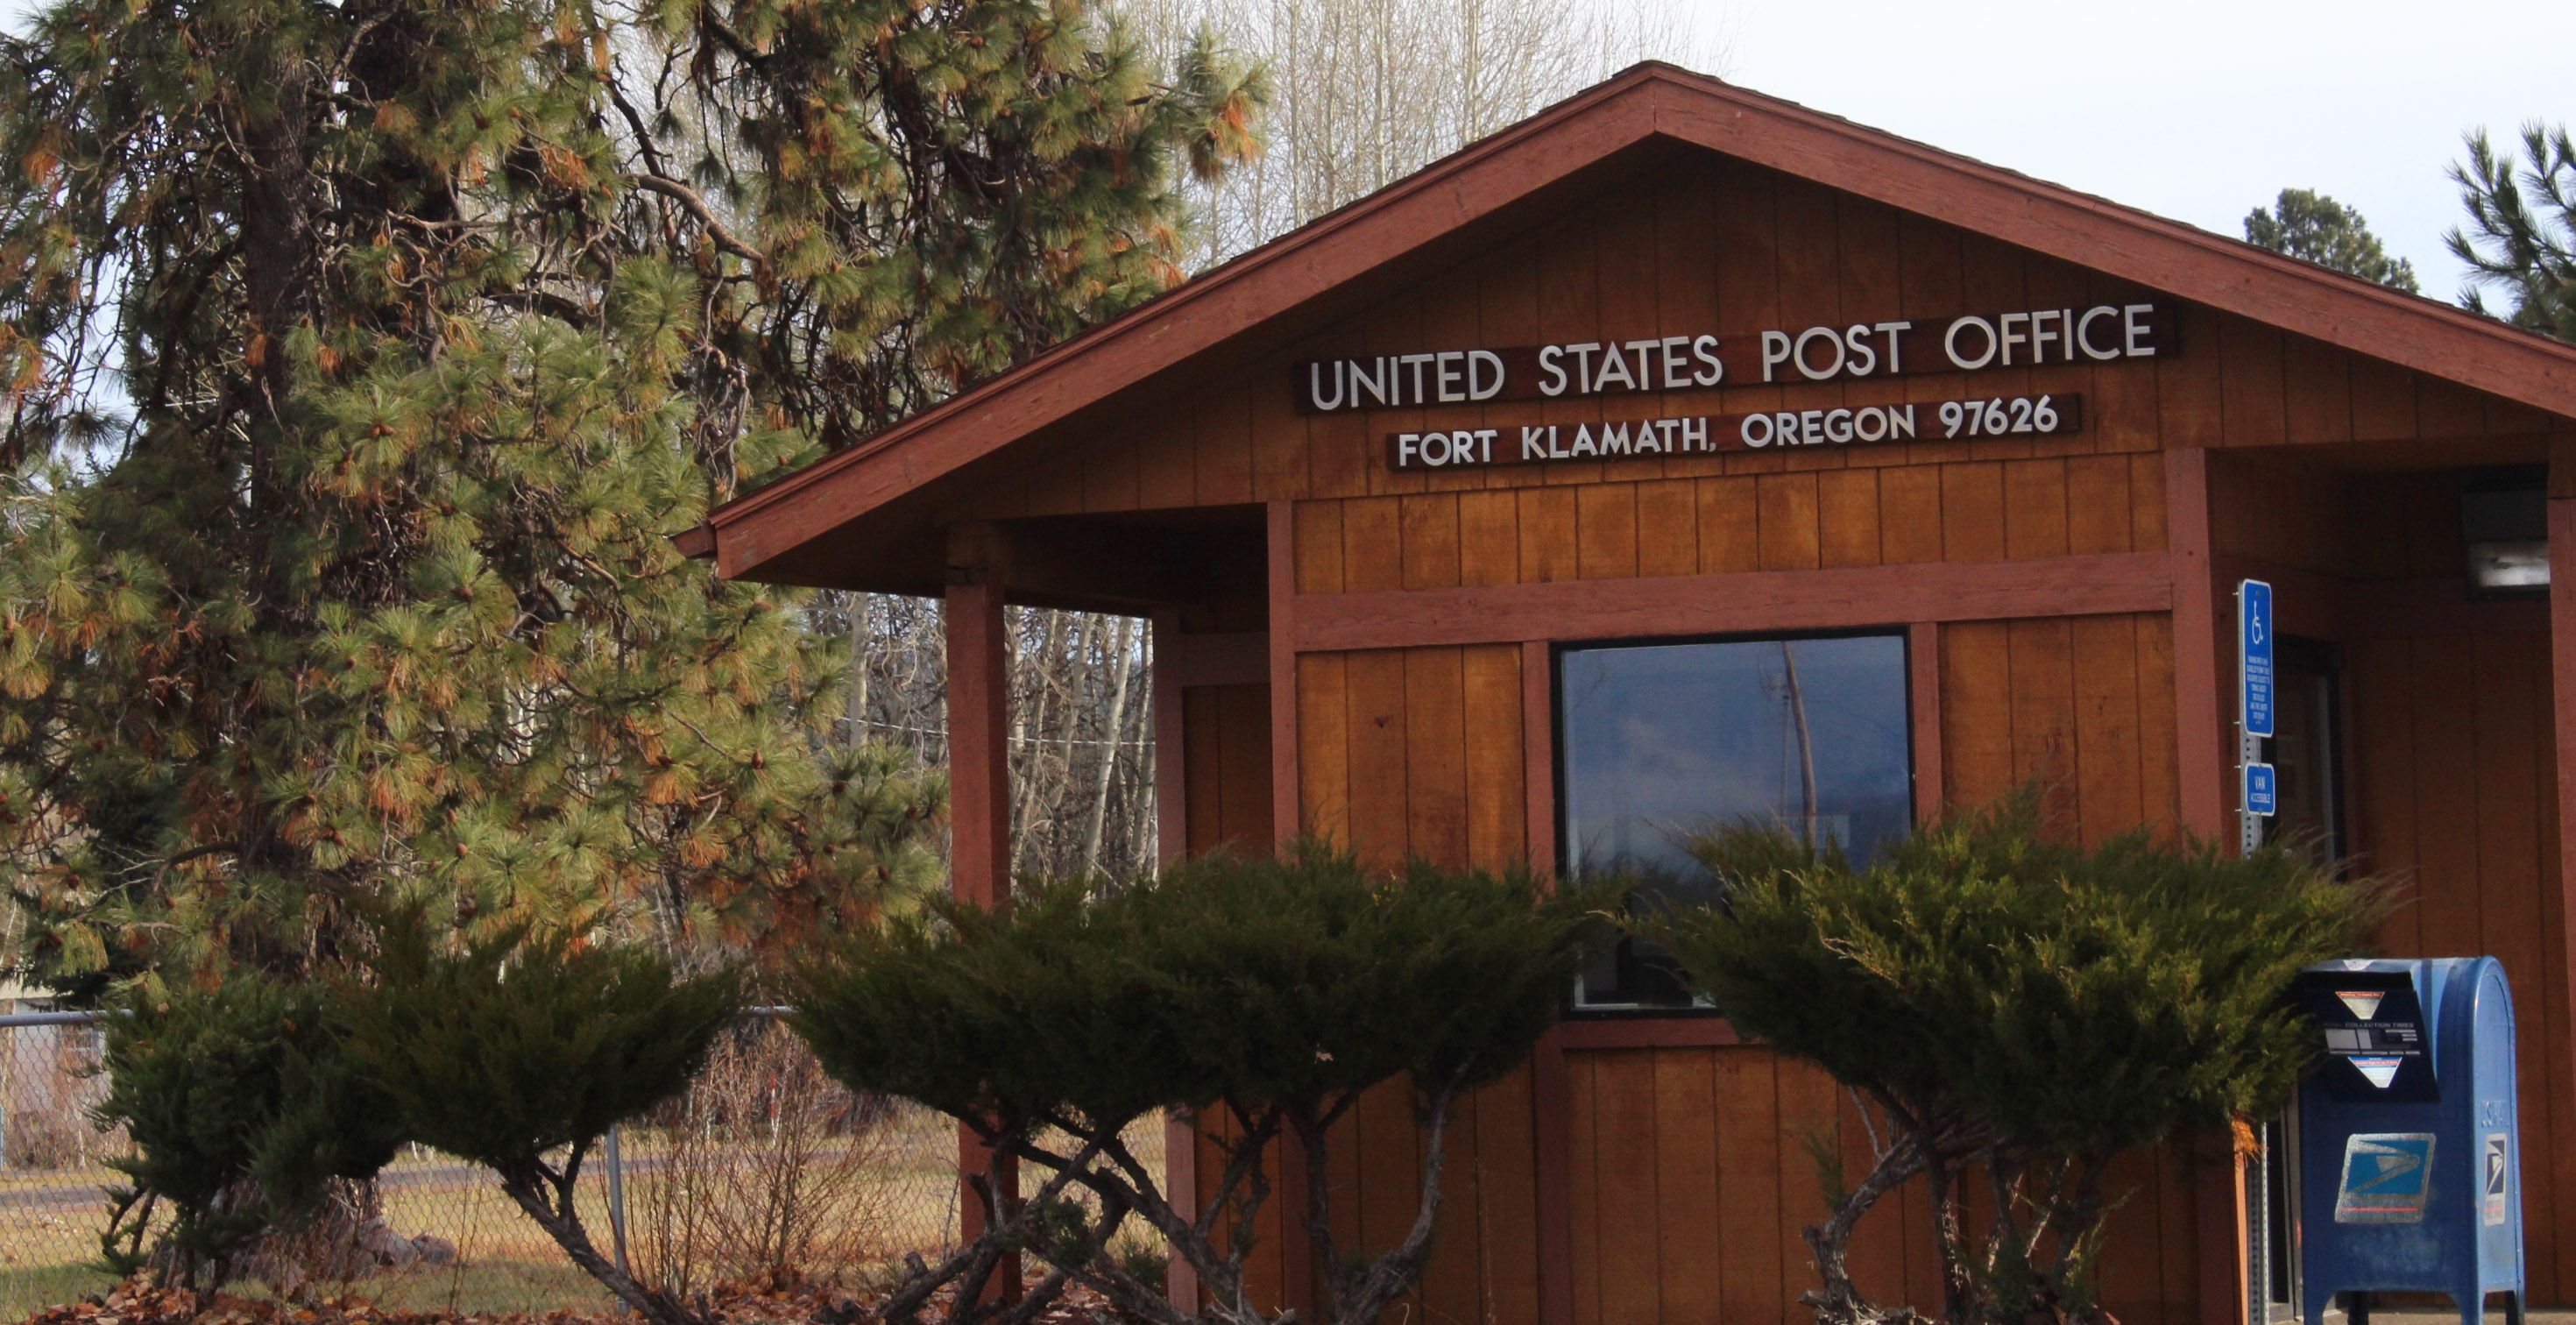 Rural post office oregon more the merrlier collage artist